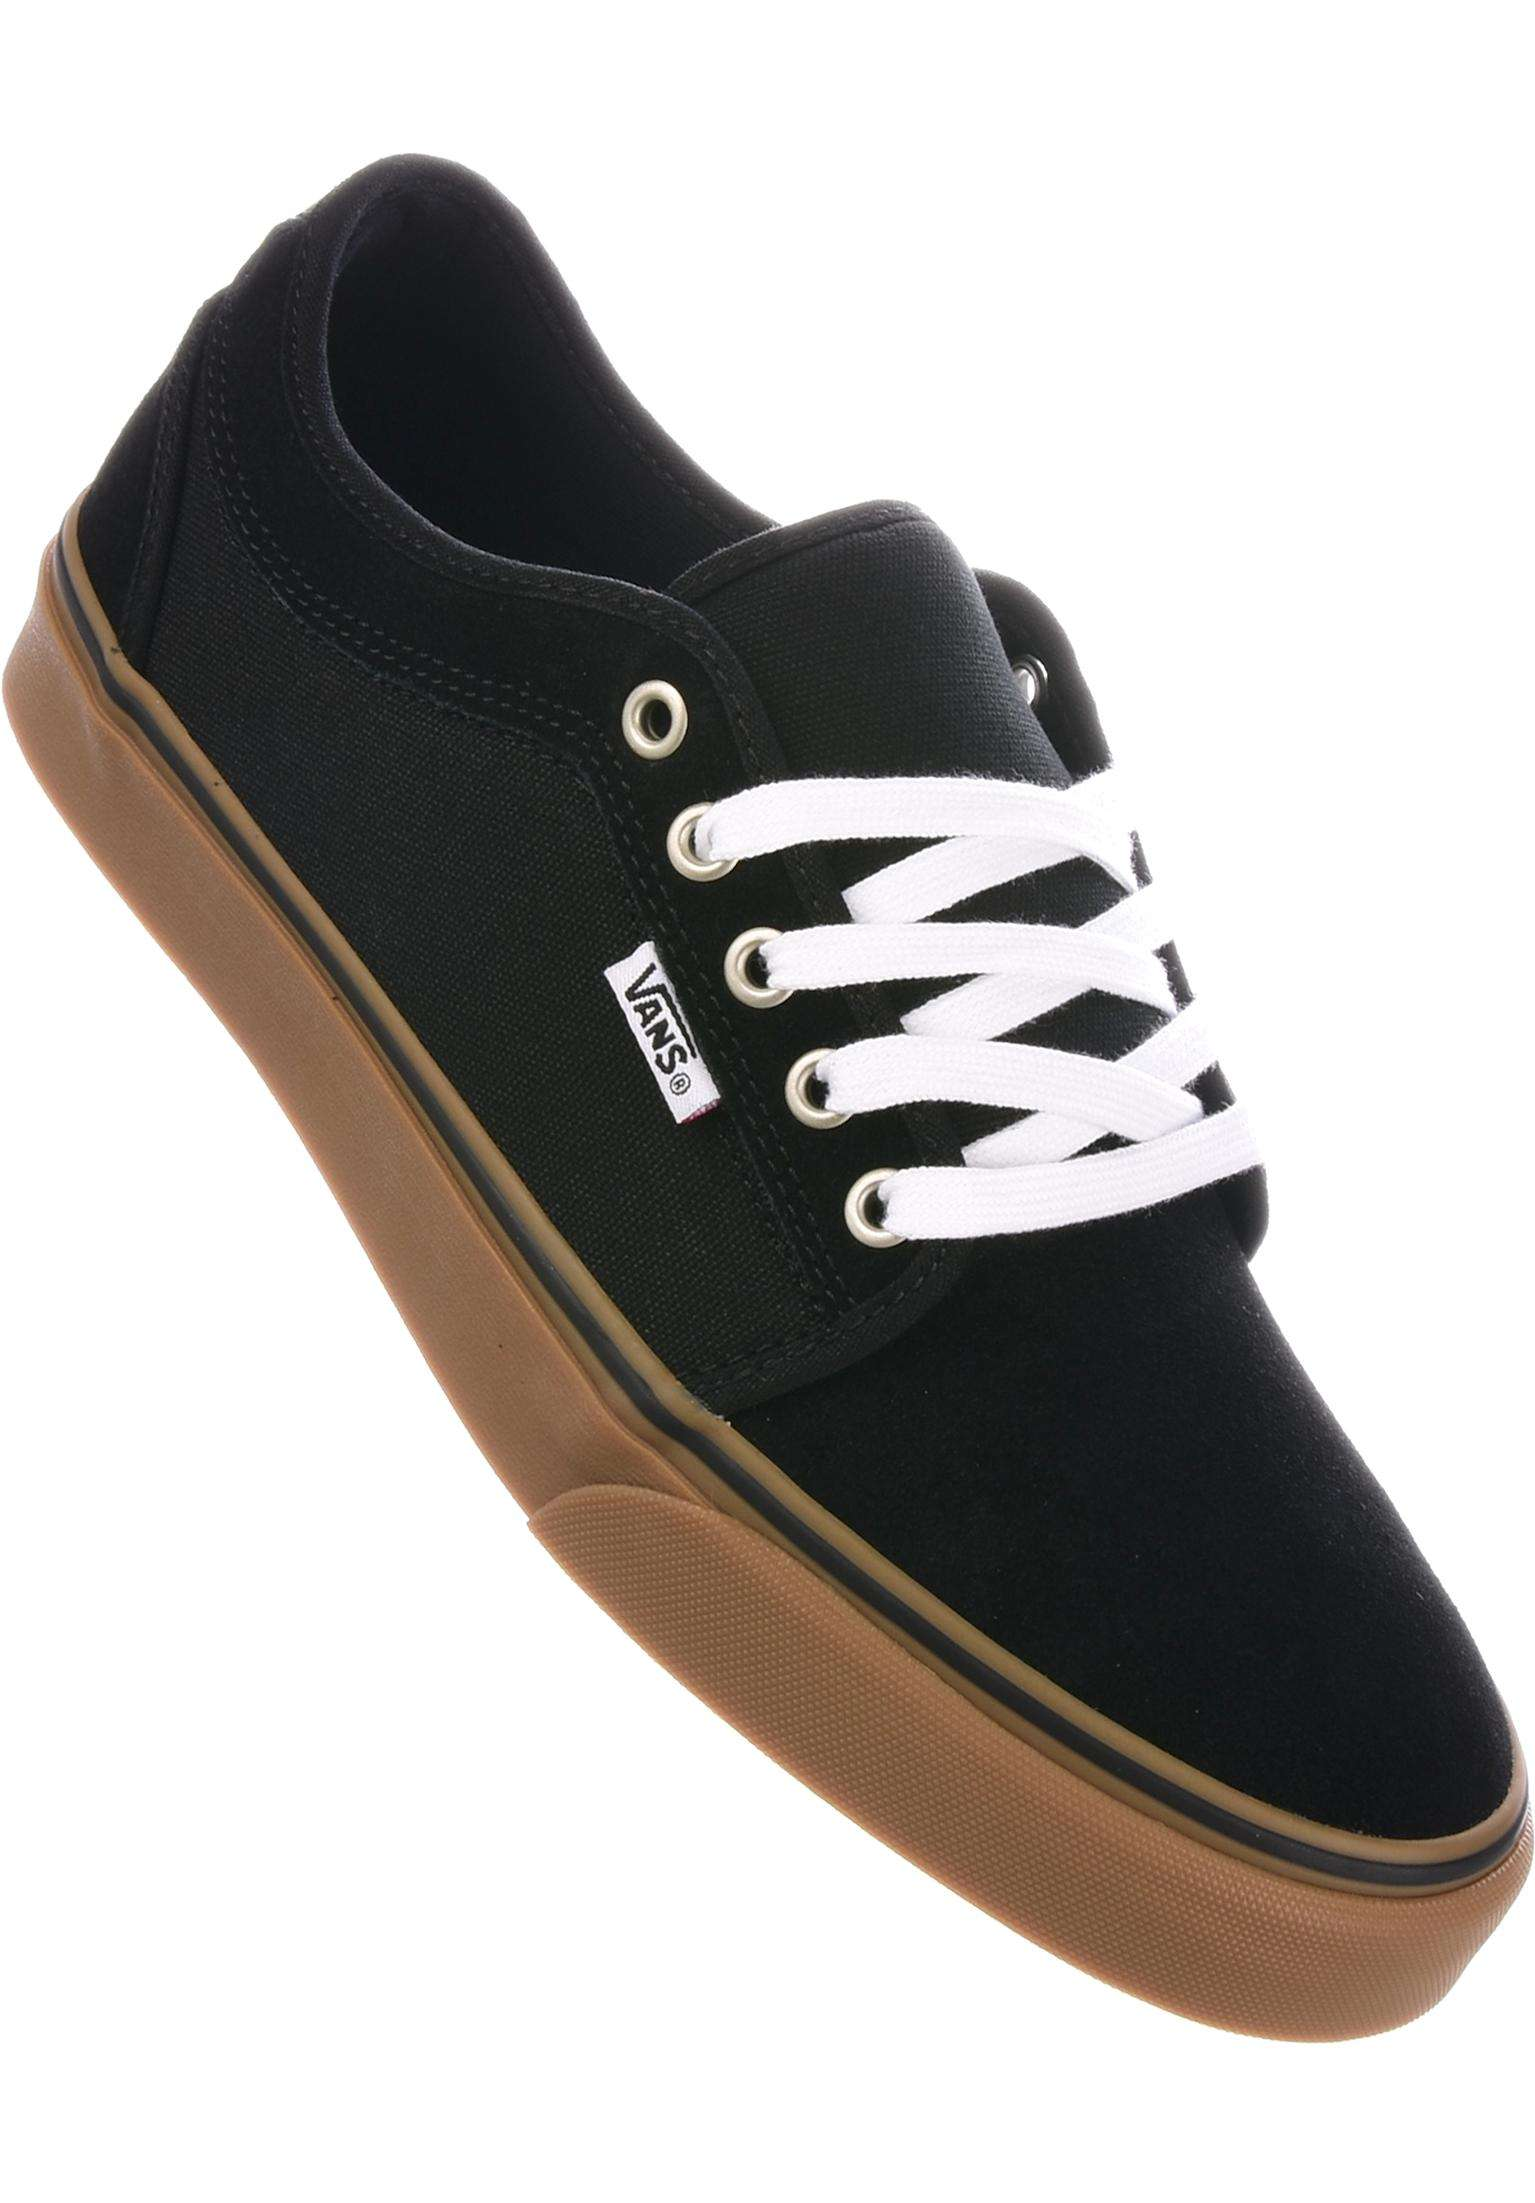 54a1e8c613f Chukka Low Pro Vans All Shoes in black-white-gum for Men